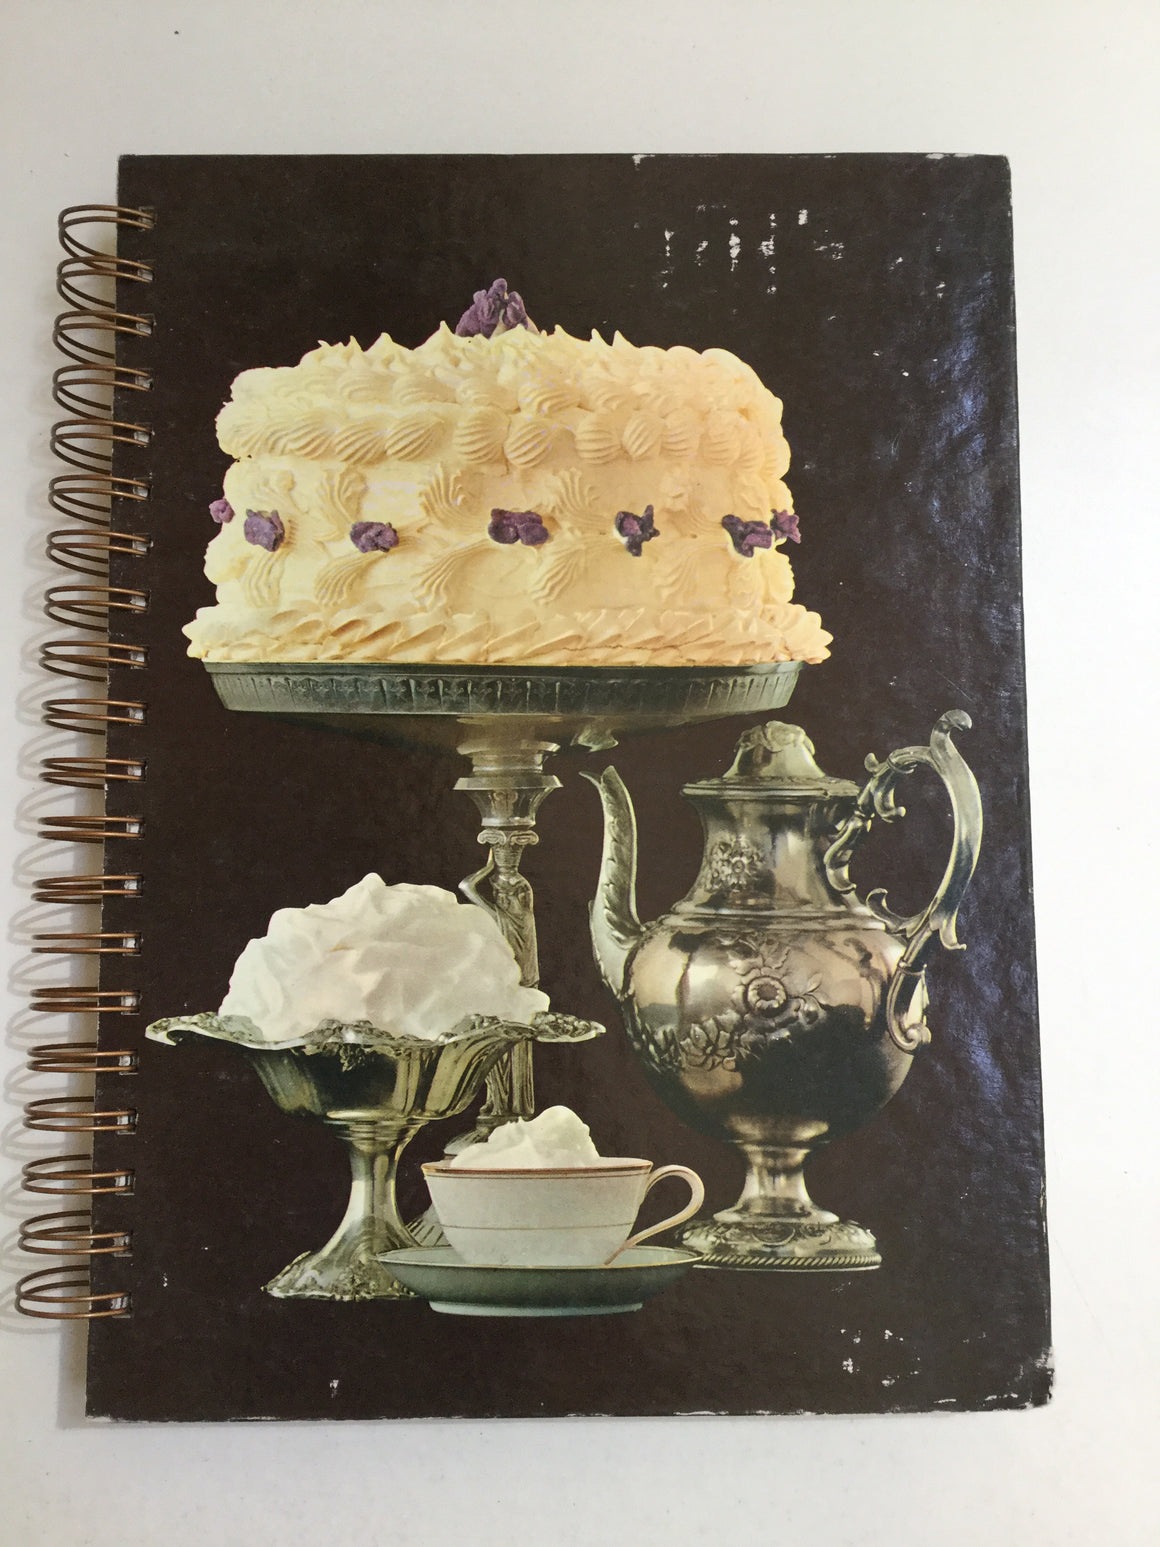 The Cooking of Vienna's Empire-Red Barn Collections